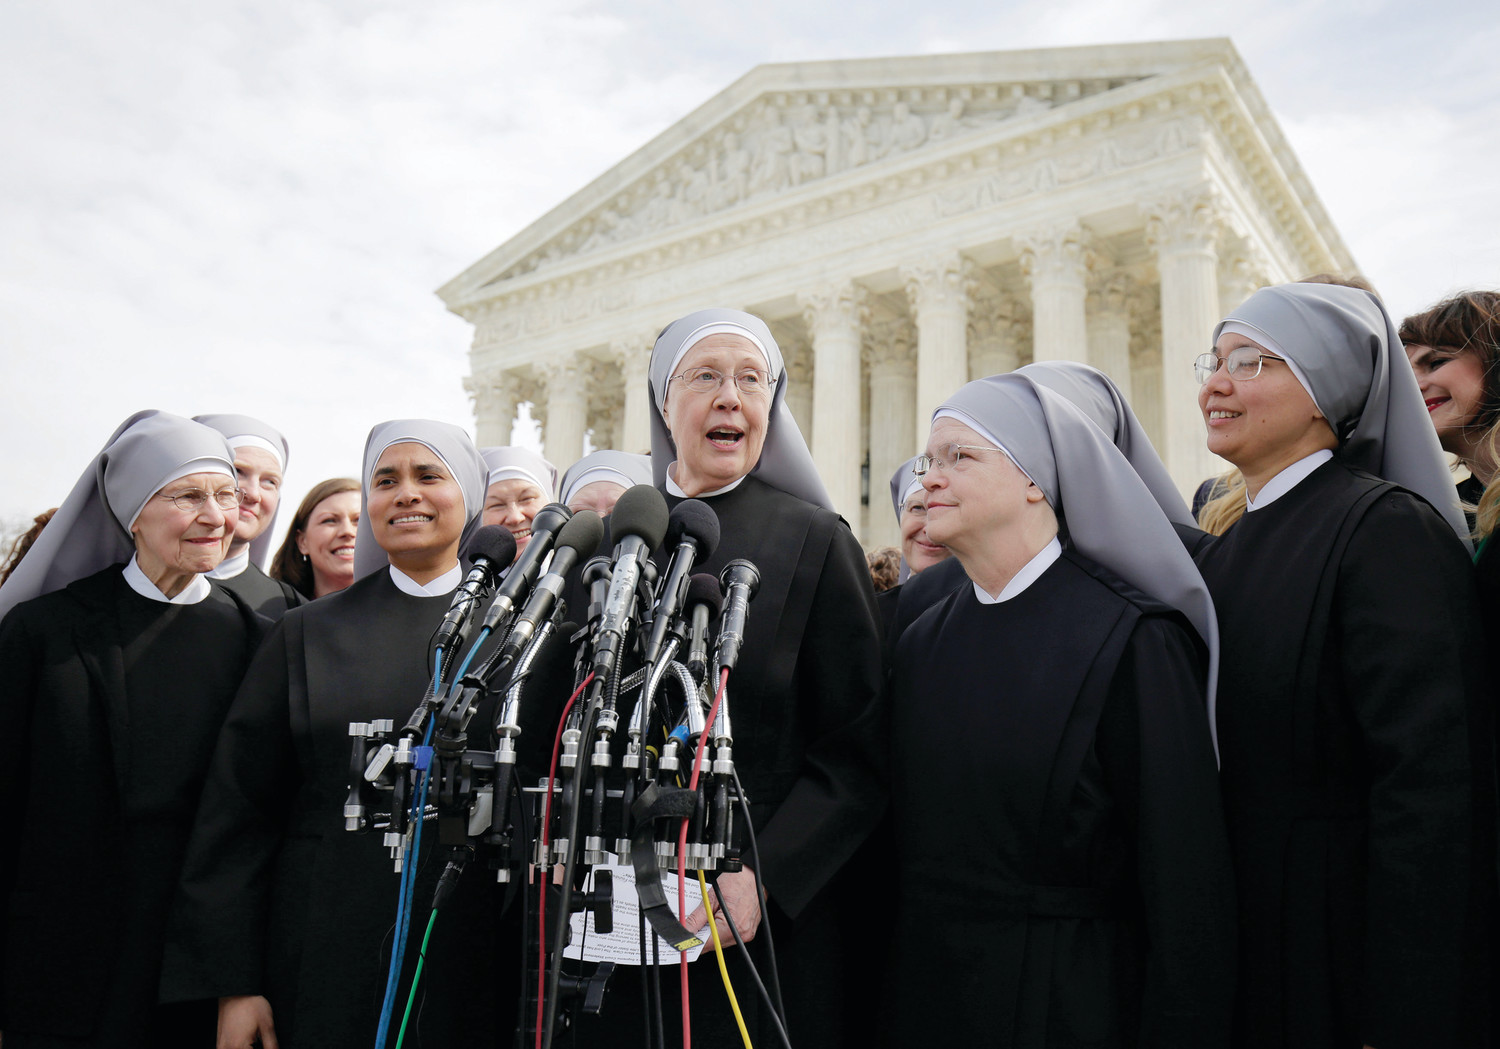 Sister Loraine Marie Maguire, mother provincial of the Denver-based Little Sisters of the Poor, speaks to the media outside the U.S. Supreme Court in Washington March 23 after attending oral arguments in the Zubik v. Burwell contraceptive mandate case. (CNS photo/Joshua Roberts, Reuters) See SCOTUS-ZUBIK-BURWELL- March 23, 2016.